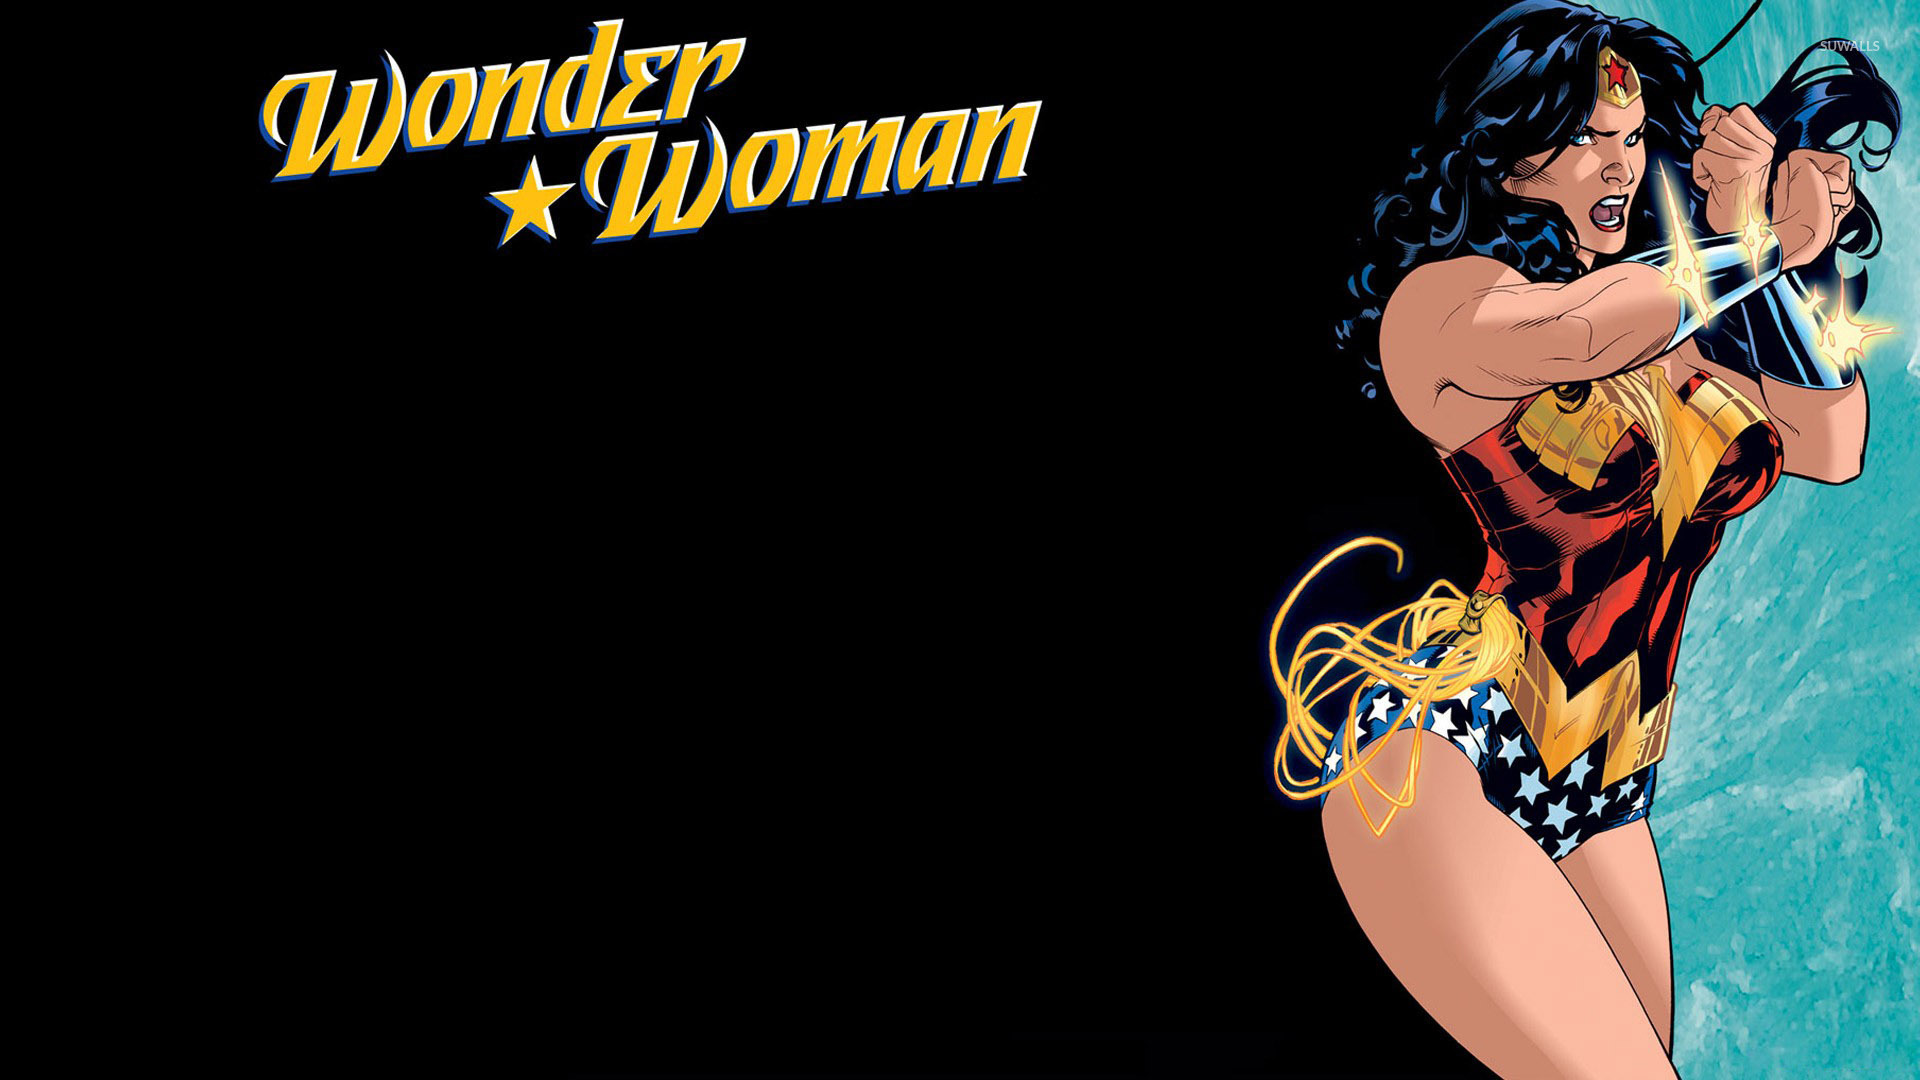 Cute Cartoon Couple Wallpapers For Mobile Download Wonder Woman Wallpaper 1920x1080 Gallery